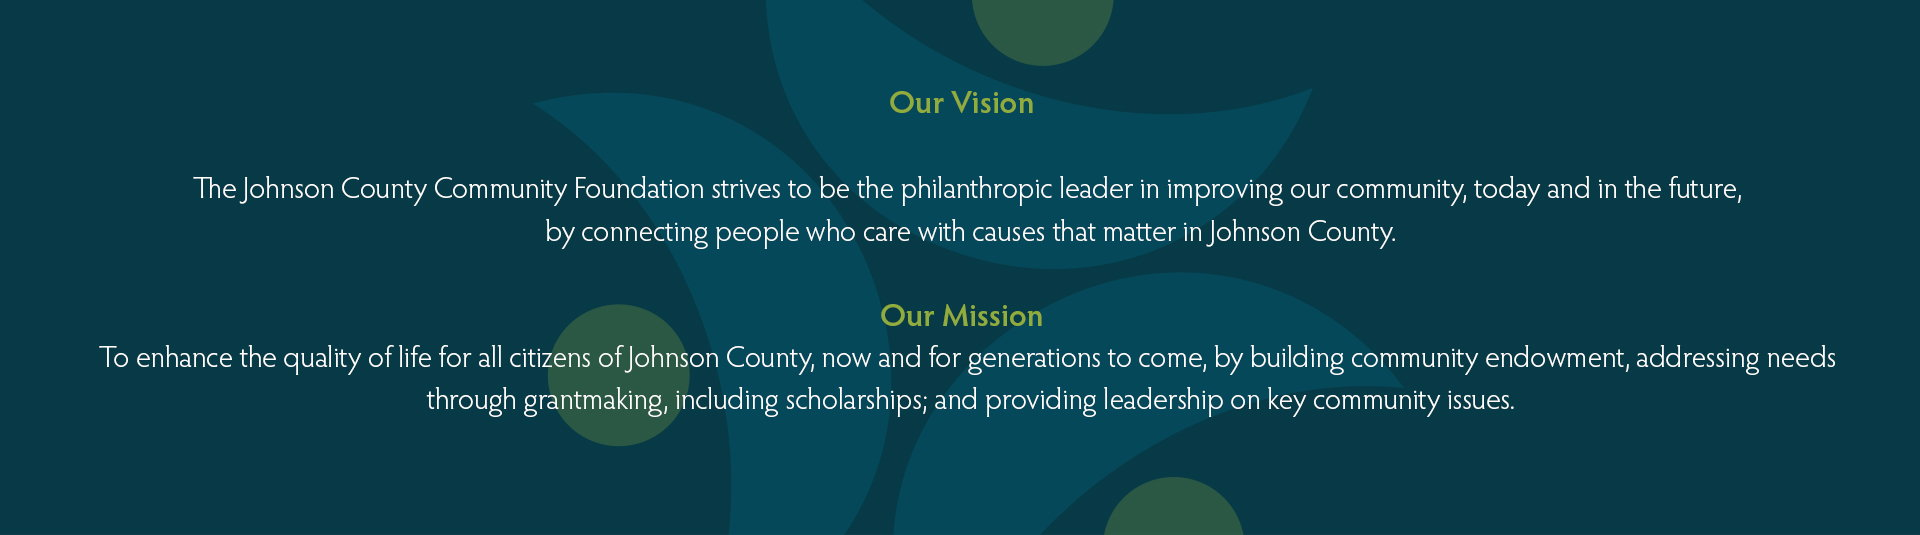 JCCF mission and vision